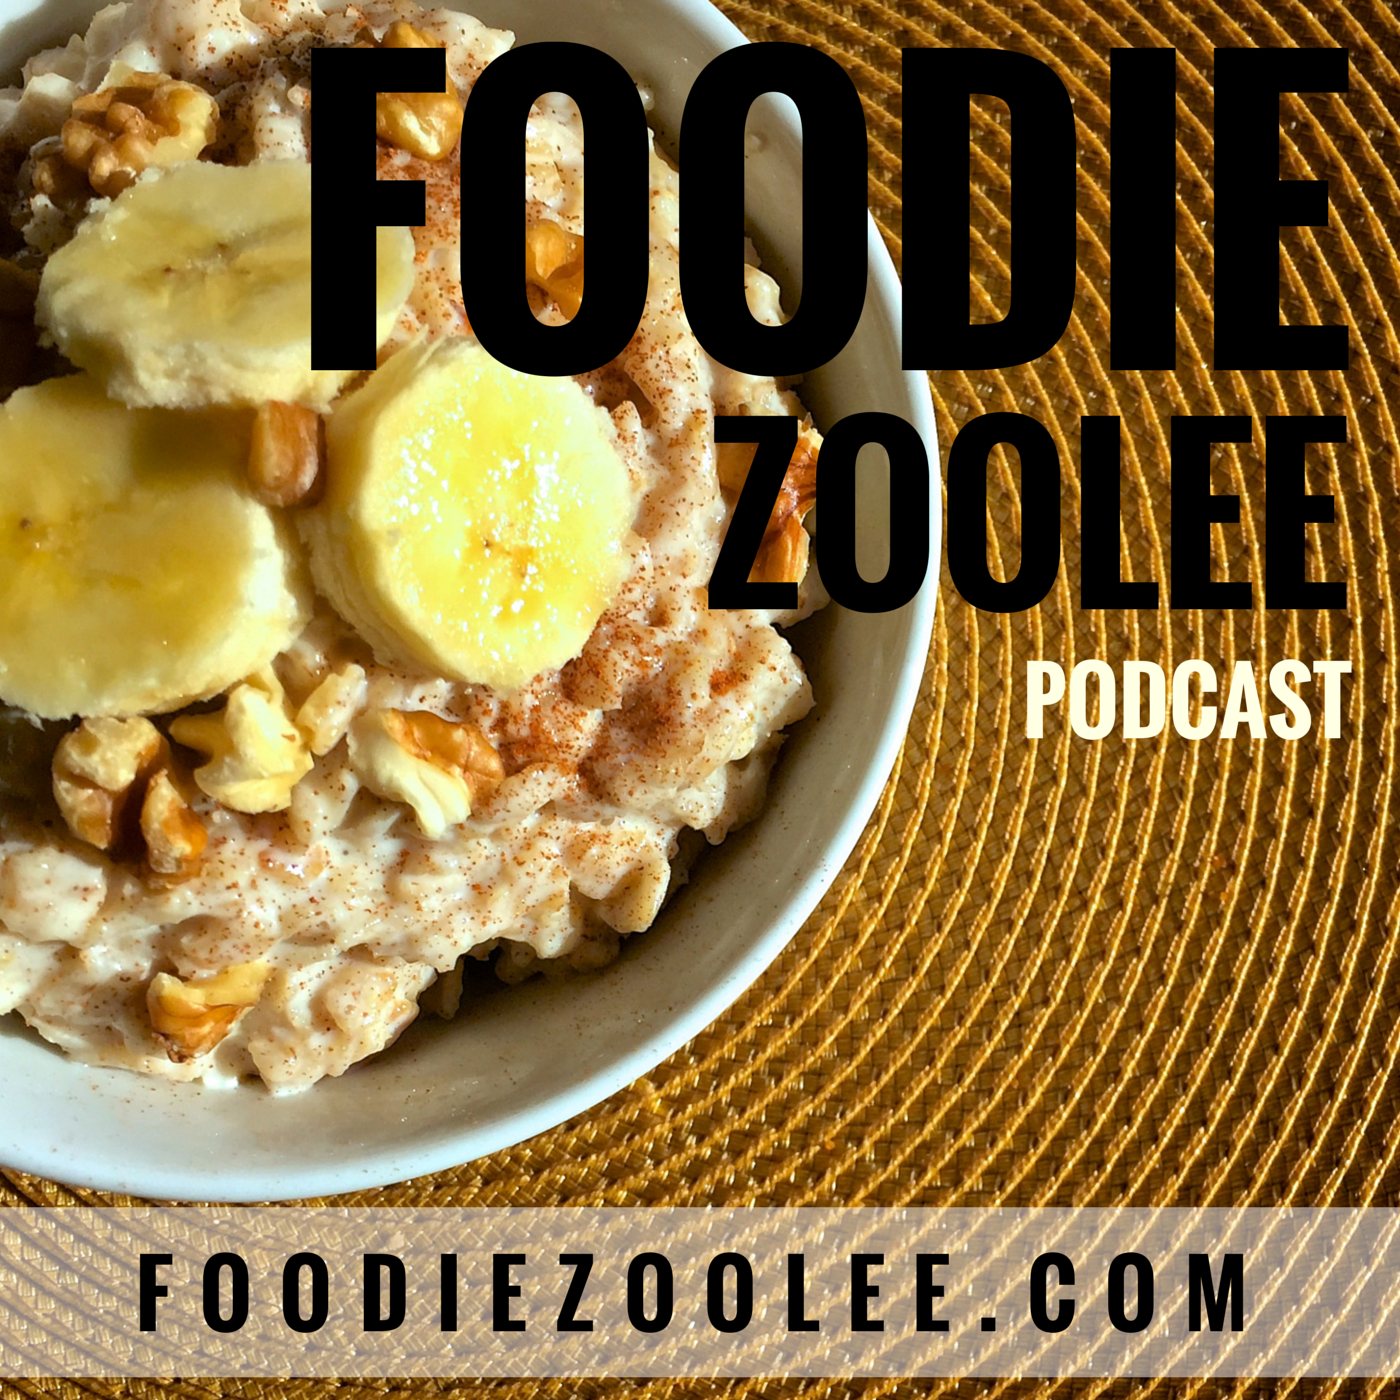 Foodie Zoolee - a recipe blog